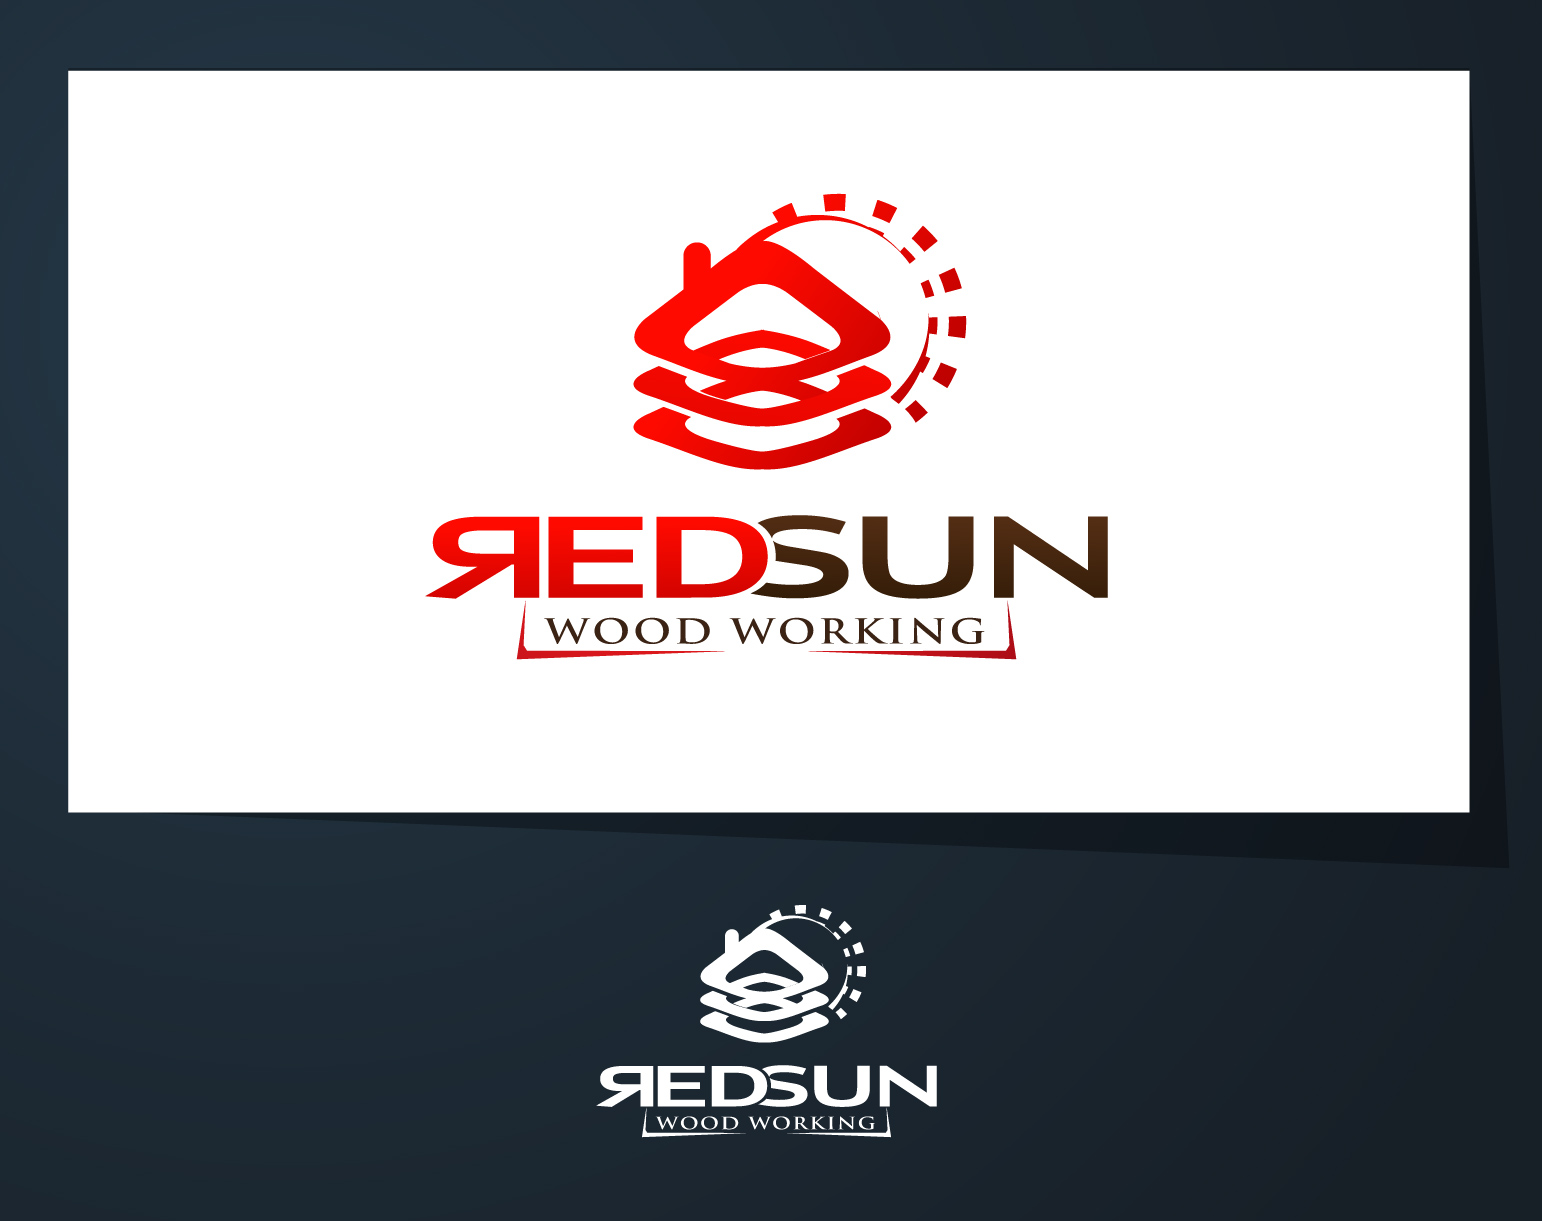 Logo Design by Mikhail Aldonza - Entry No. 136 in the Logo Design Contest Red Sun Woodworking Logo Design.